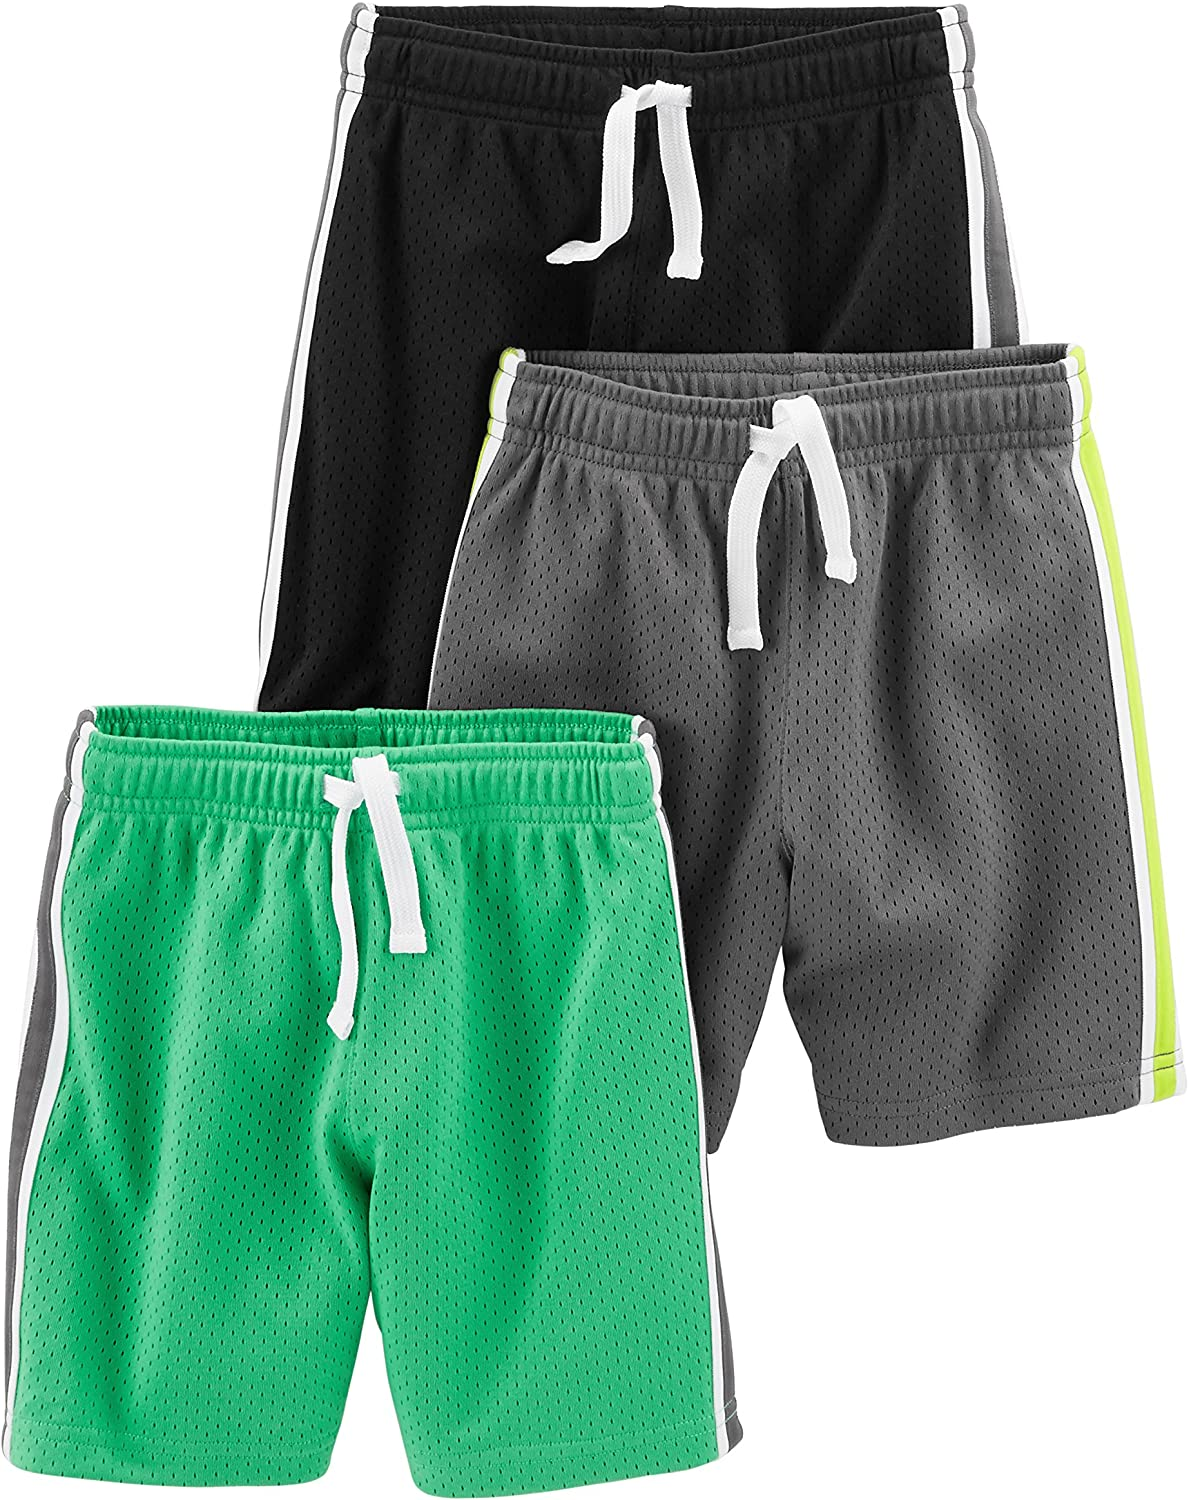 Simple Joys by Carter's Boys' Toddler 3-Pack Mesh Shorts : Clothing, Shoes & Jewelry